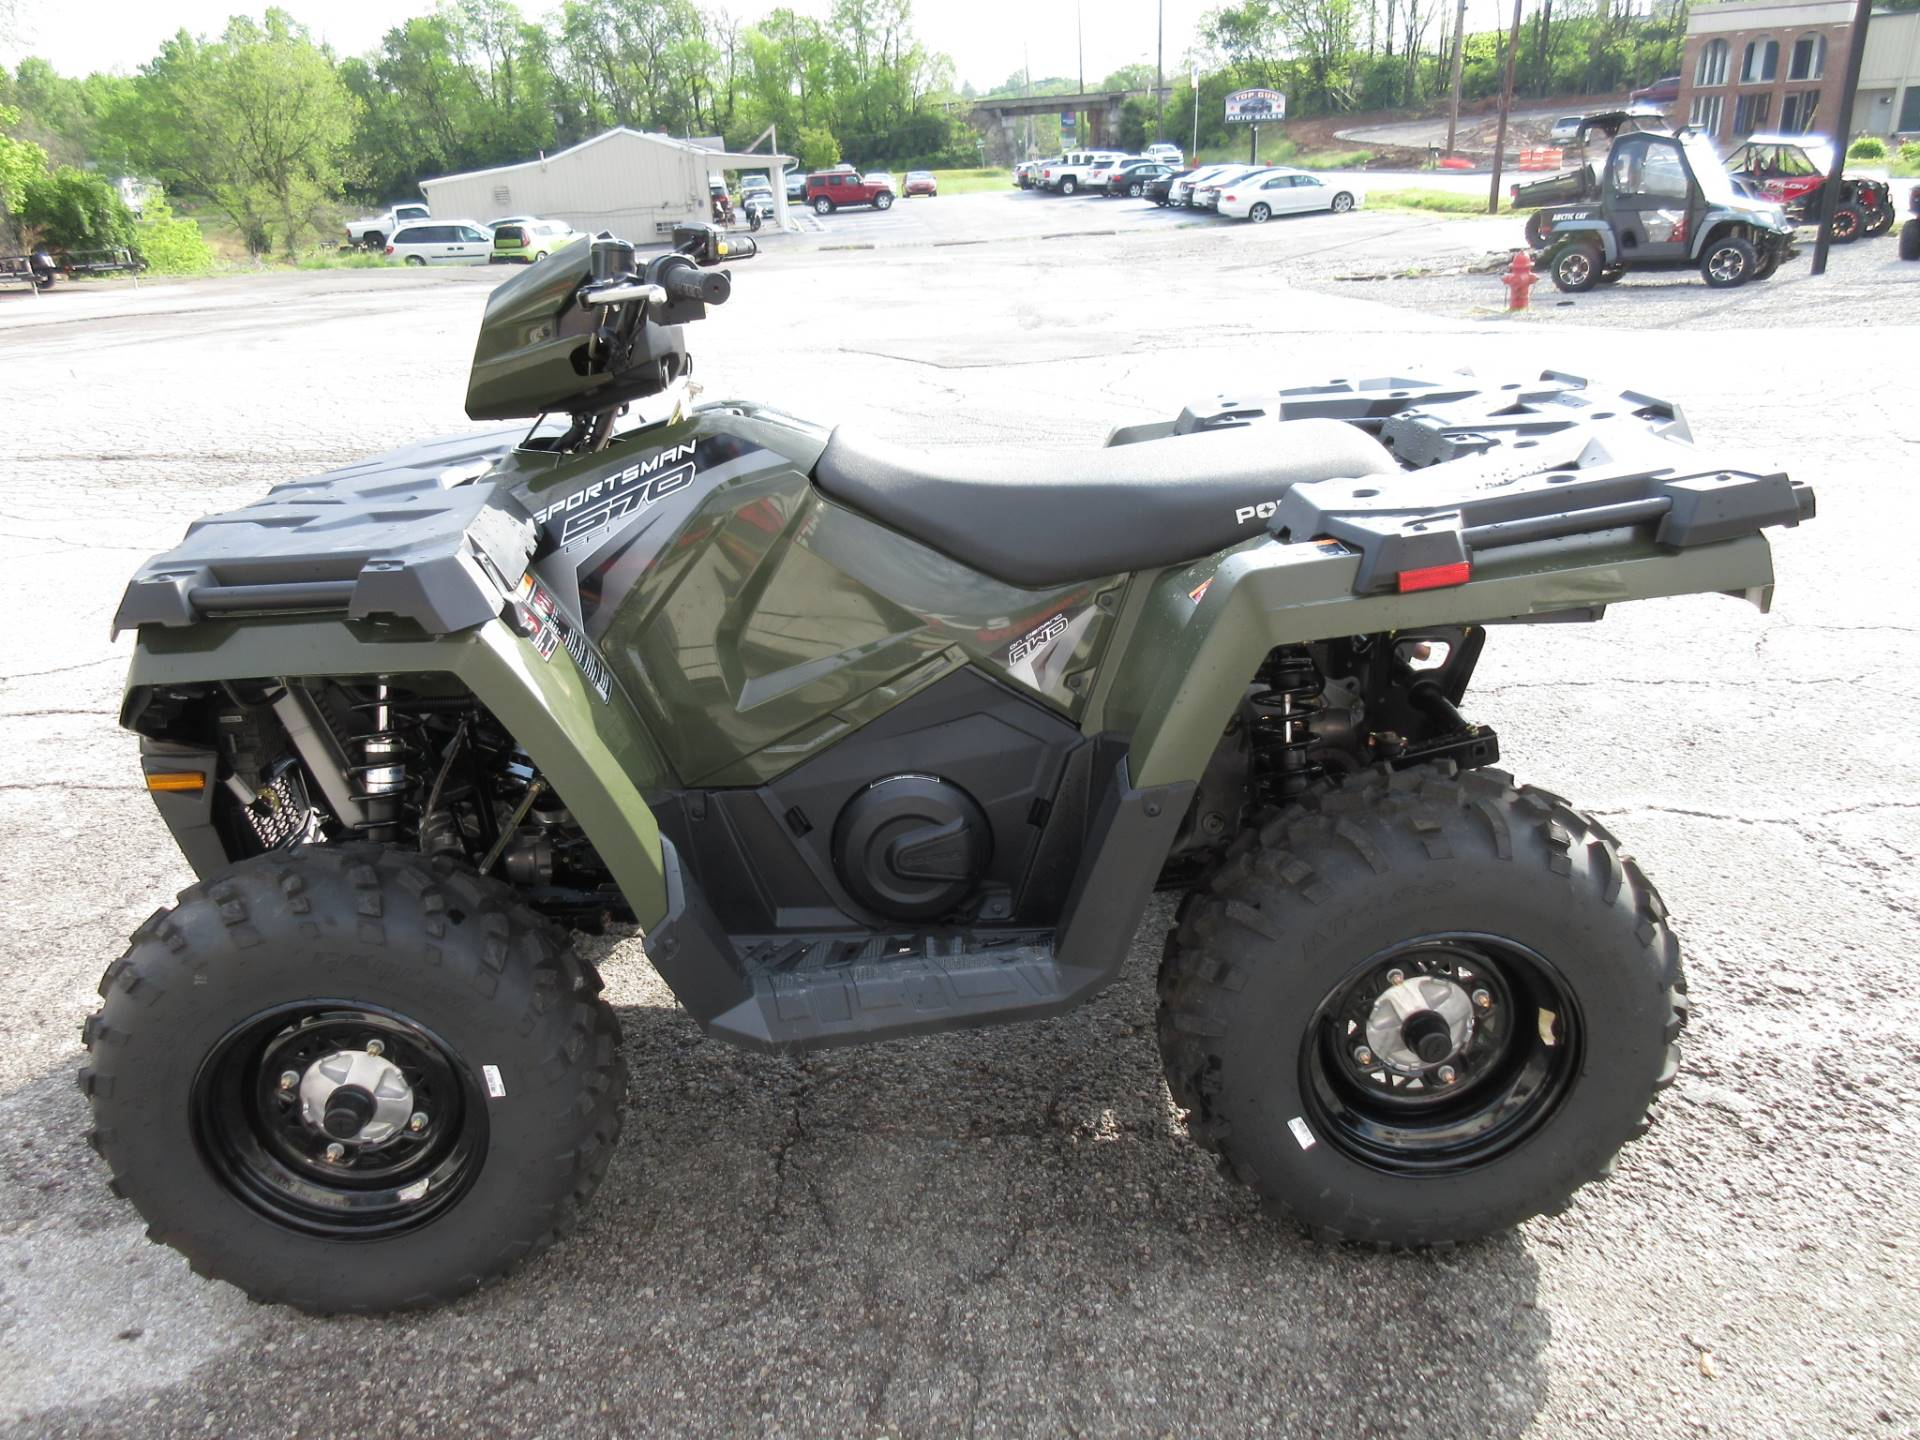 2019 Polaris Sportsman 570 in Georgetown, Kentucky - Photo 5